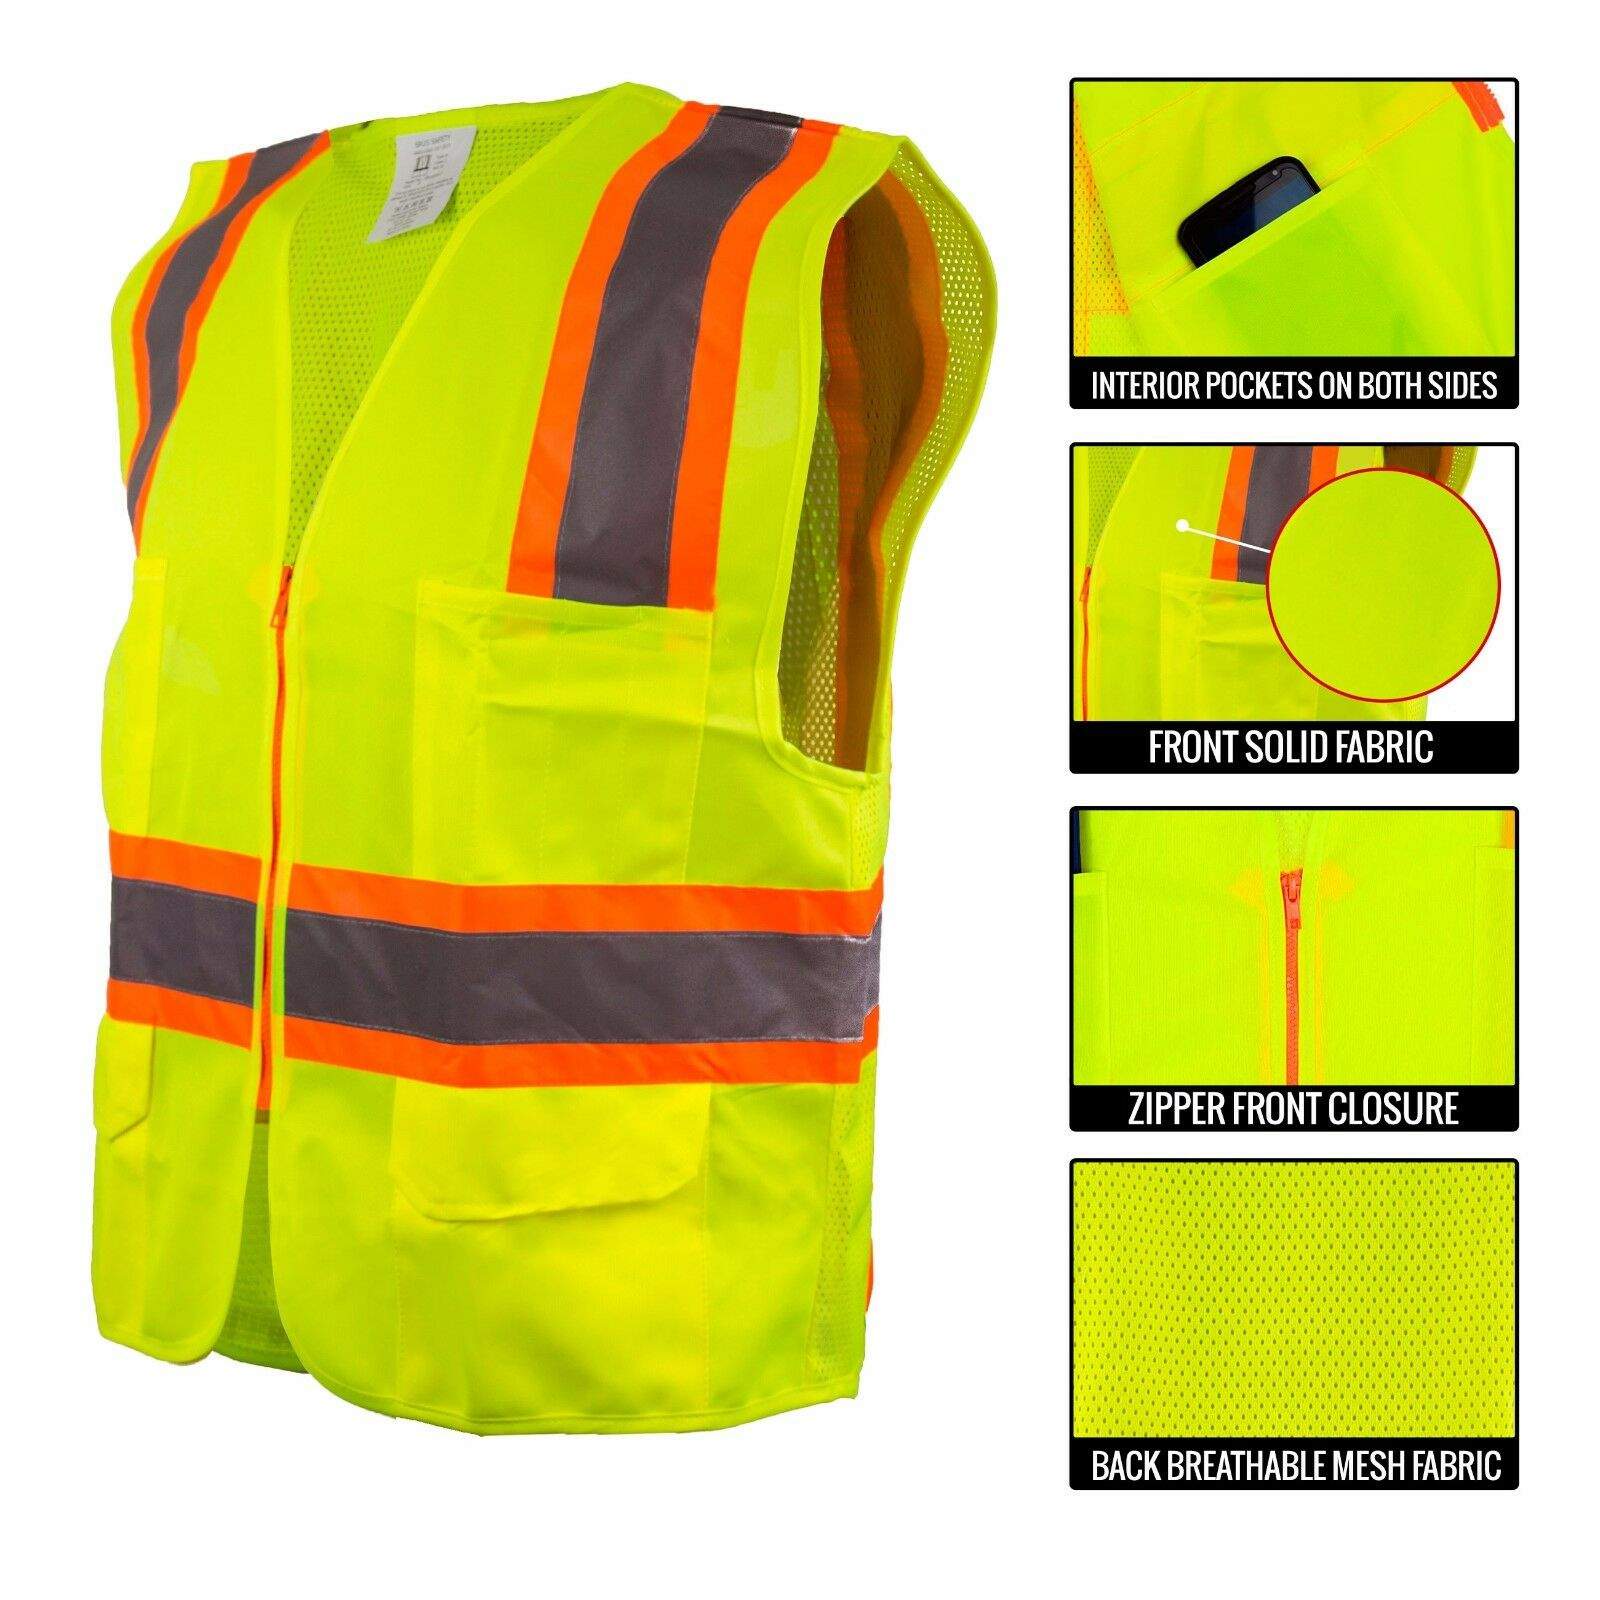 New High Vis Class 2 Safety Vest SRUS 9811 Breathable Reflective Stripes 4XL